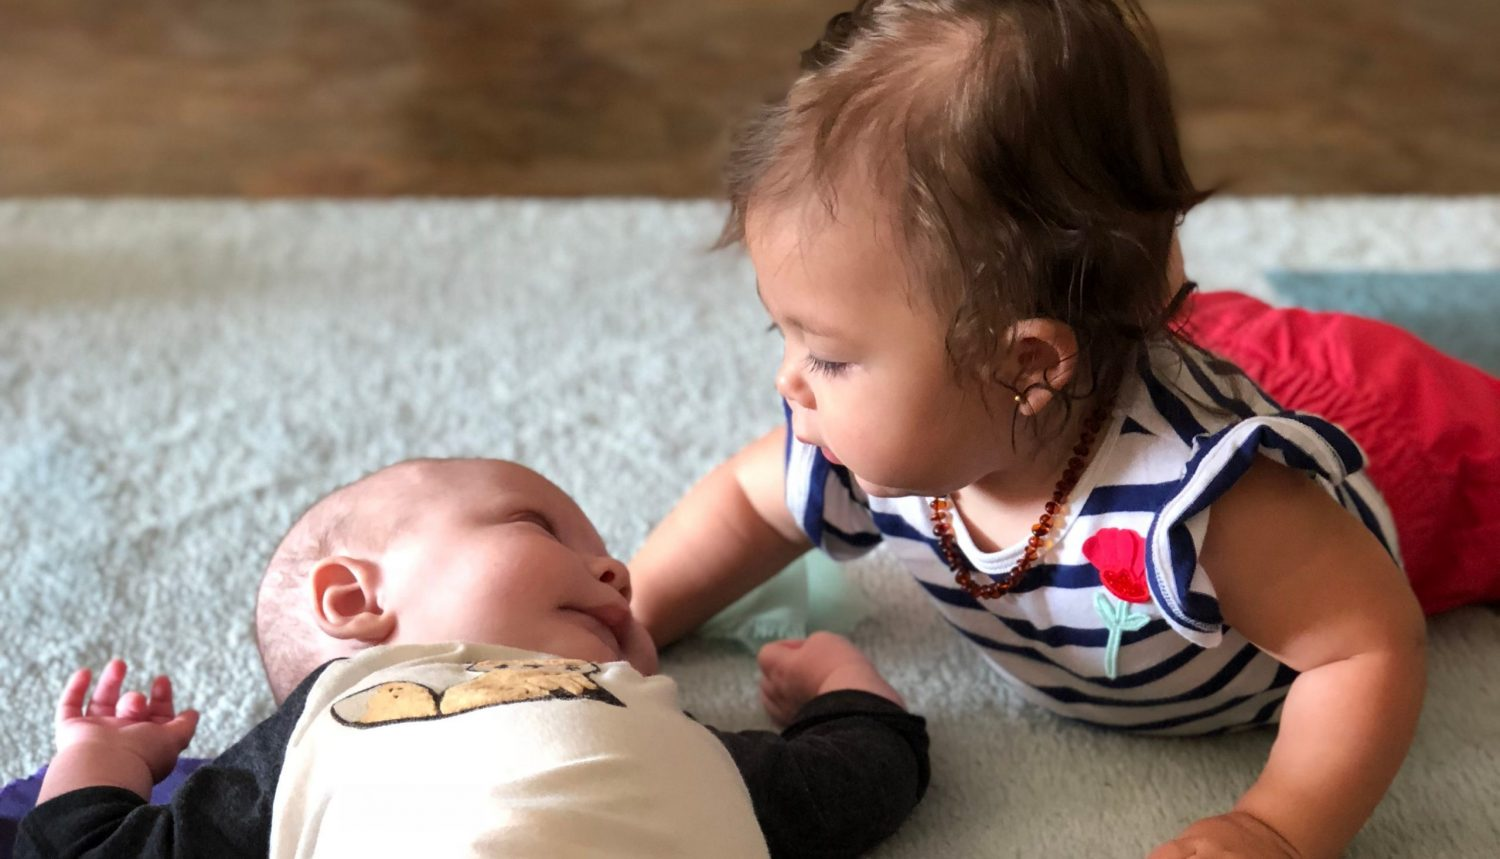 Montessori Private School Arlington TX | Preparing children for life, not just the next test. | Infants studying each other's face in our infant classroom.